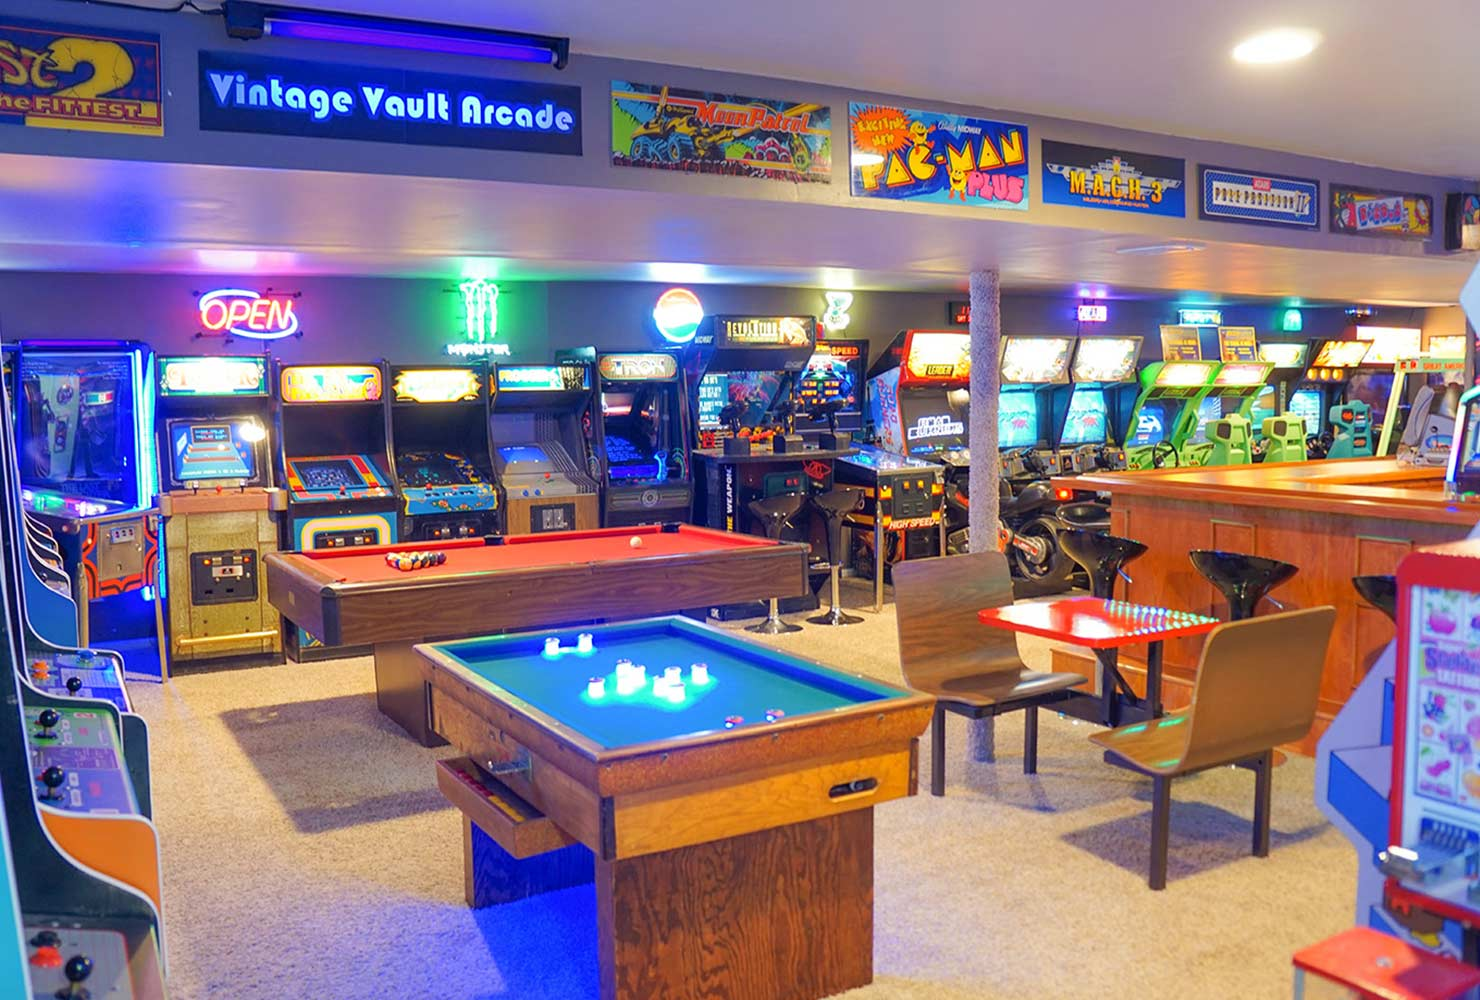 Hockey has been a favorite game of sports fans since the late 1800s. 38 Best Game Room Ideas For Any Entertaining | Shutterfly